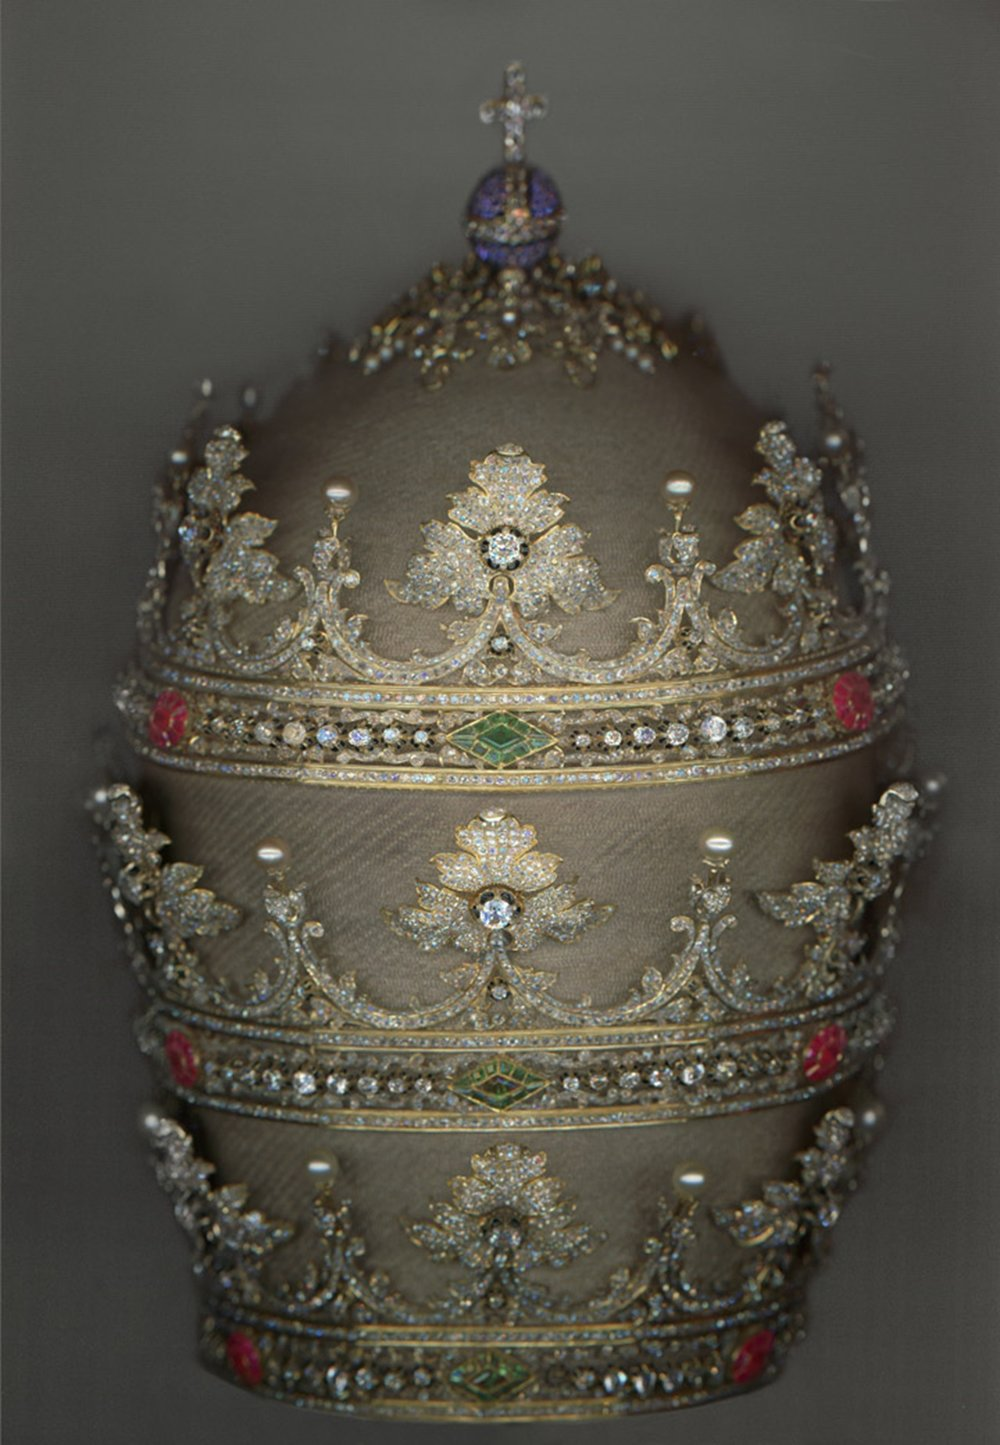 Tiara of Pius IX - Tiara of Pius IX (r. 1846–78), 1854. German and Spanish. Courtesy of the Collection of the Office of Liturgical Celebrations of the Supreme Pontiff, Papal Sacristy, Vatican City. Digital composite scan by Katerina Jebb